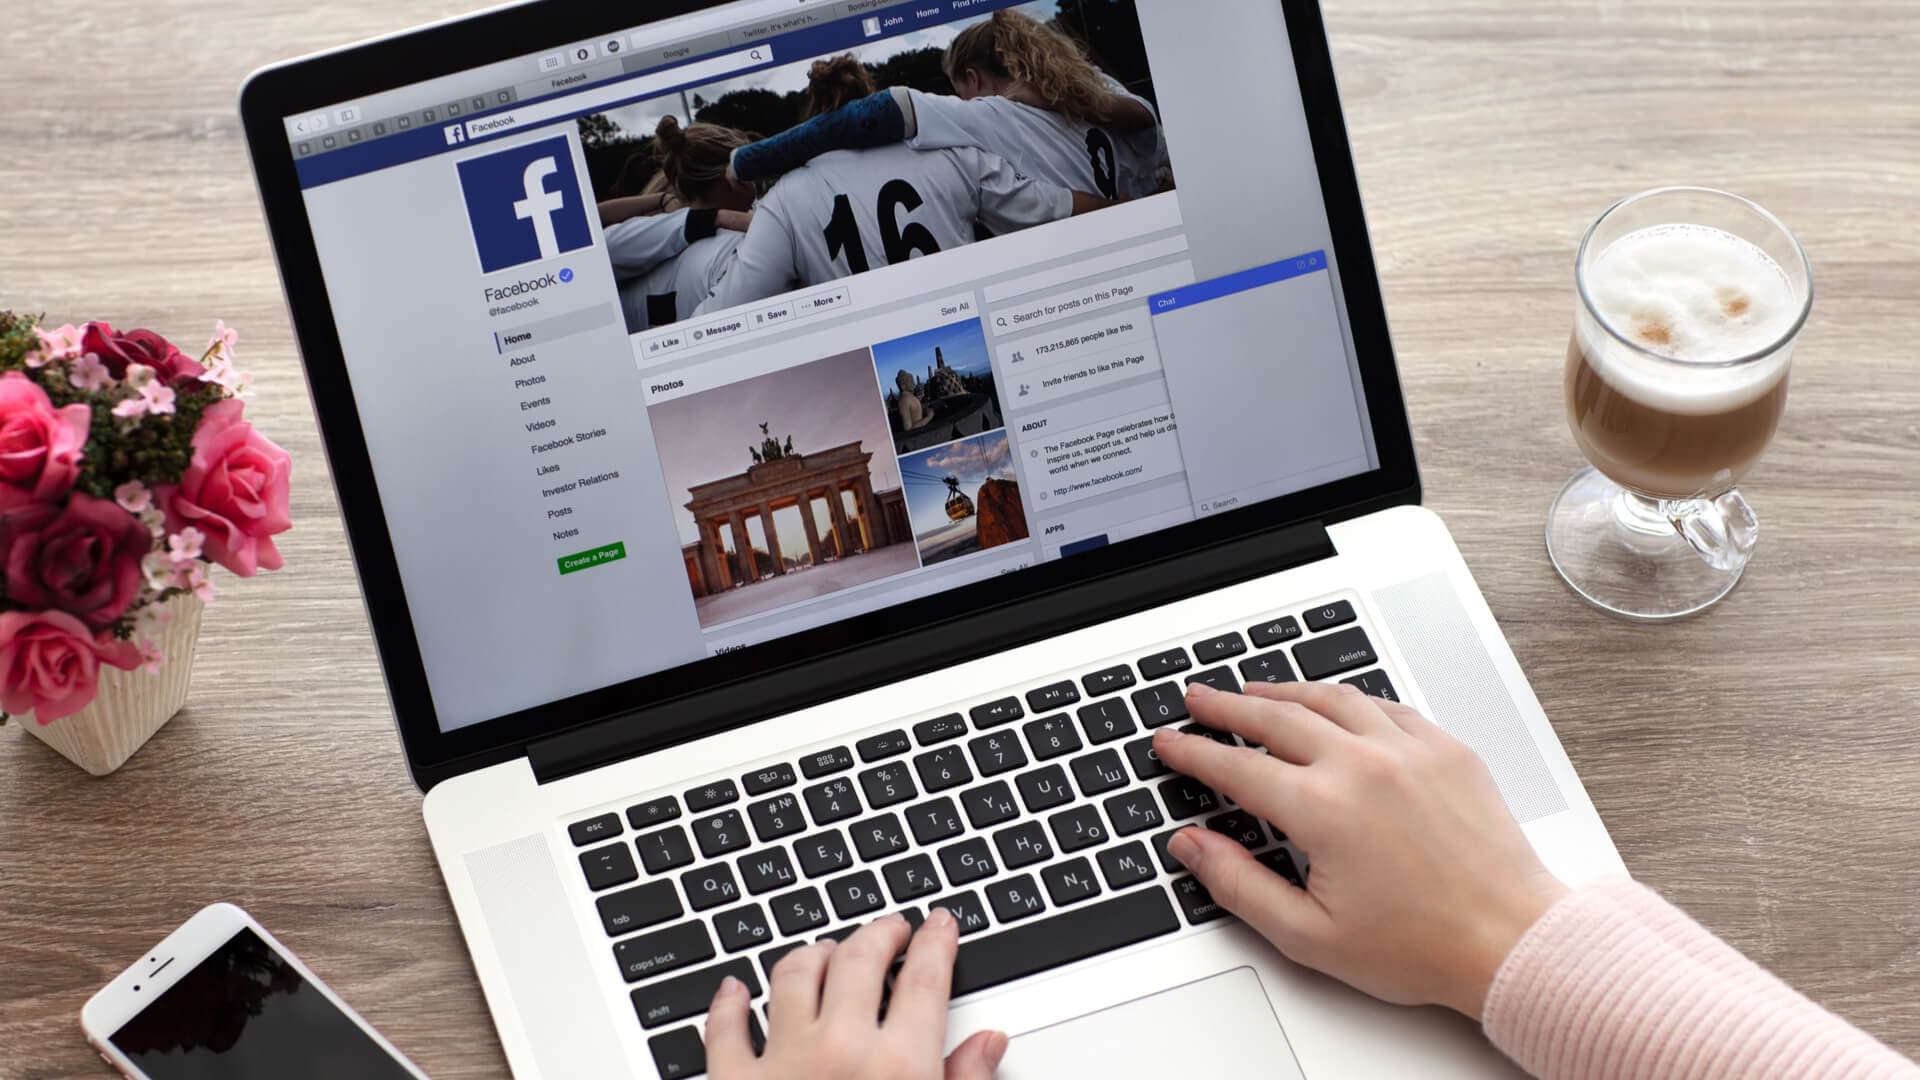 Facebook opens search ads to all advertisers - Marketing Land